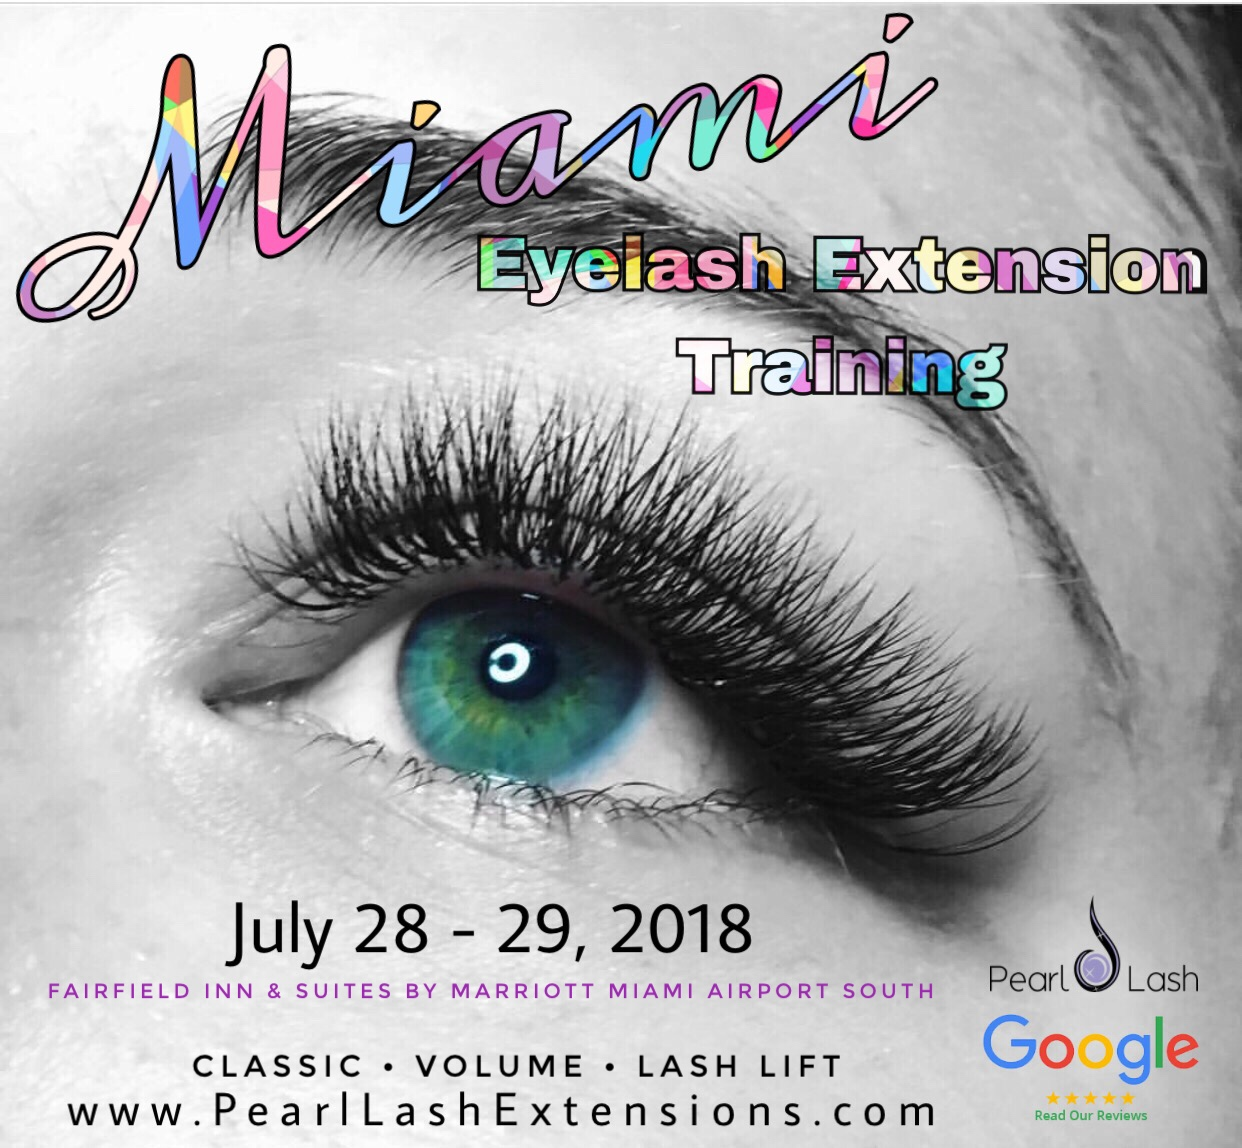 Eyelash Extension Training Miami Event Modern Salon